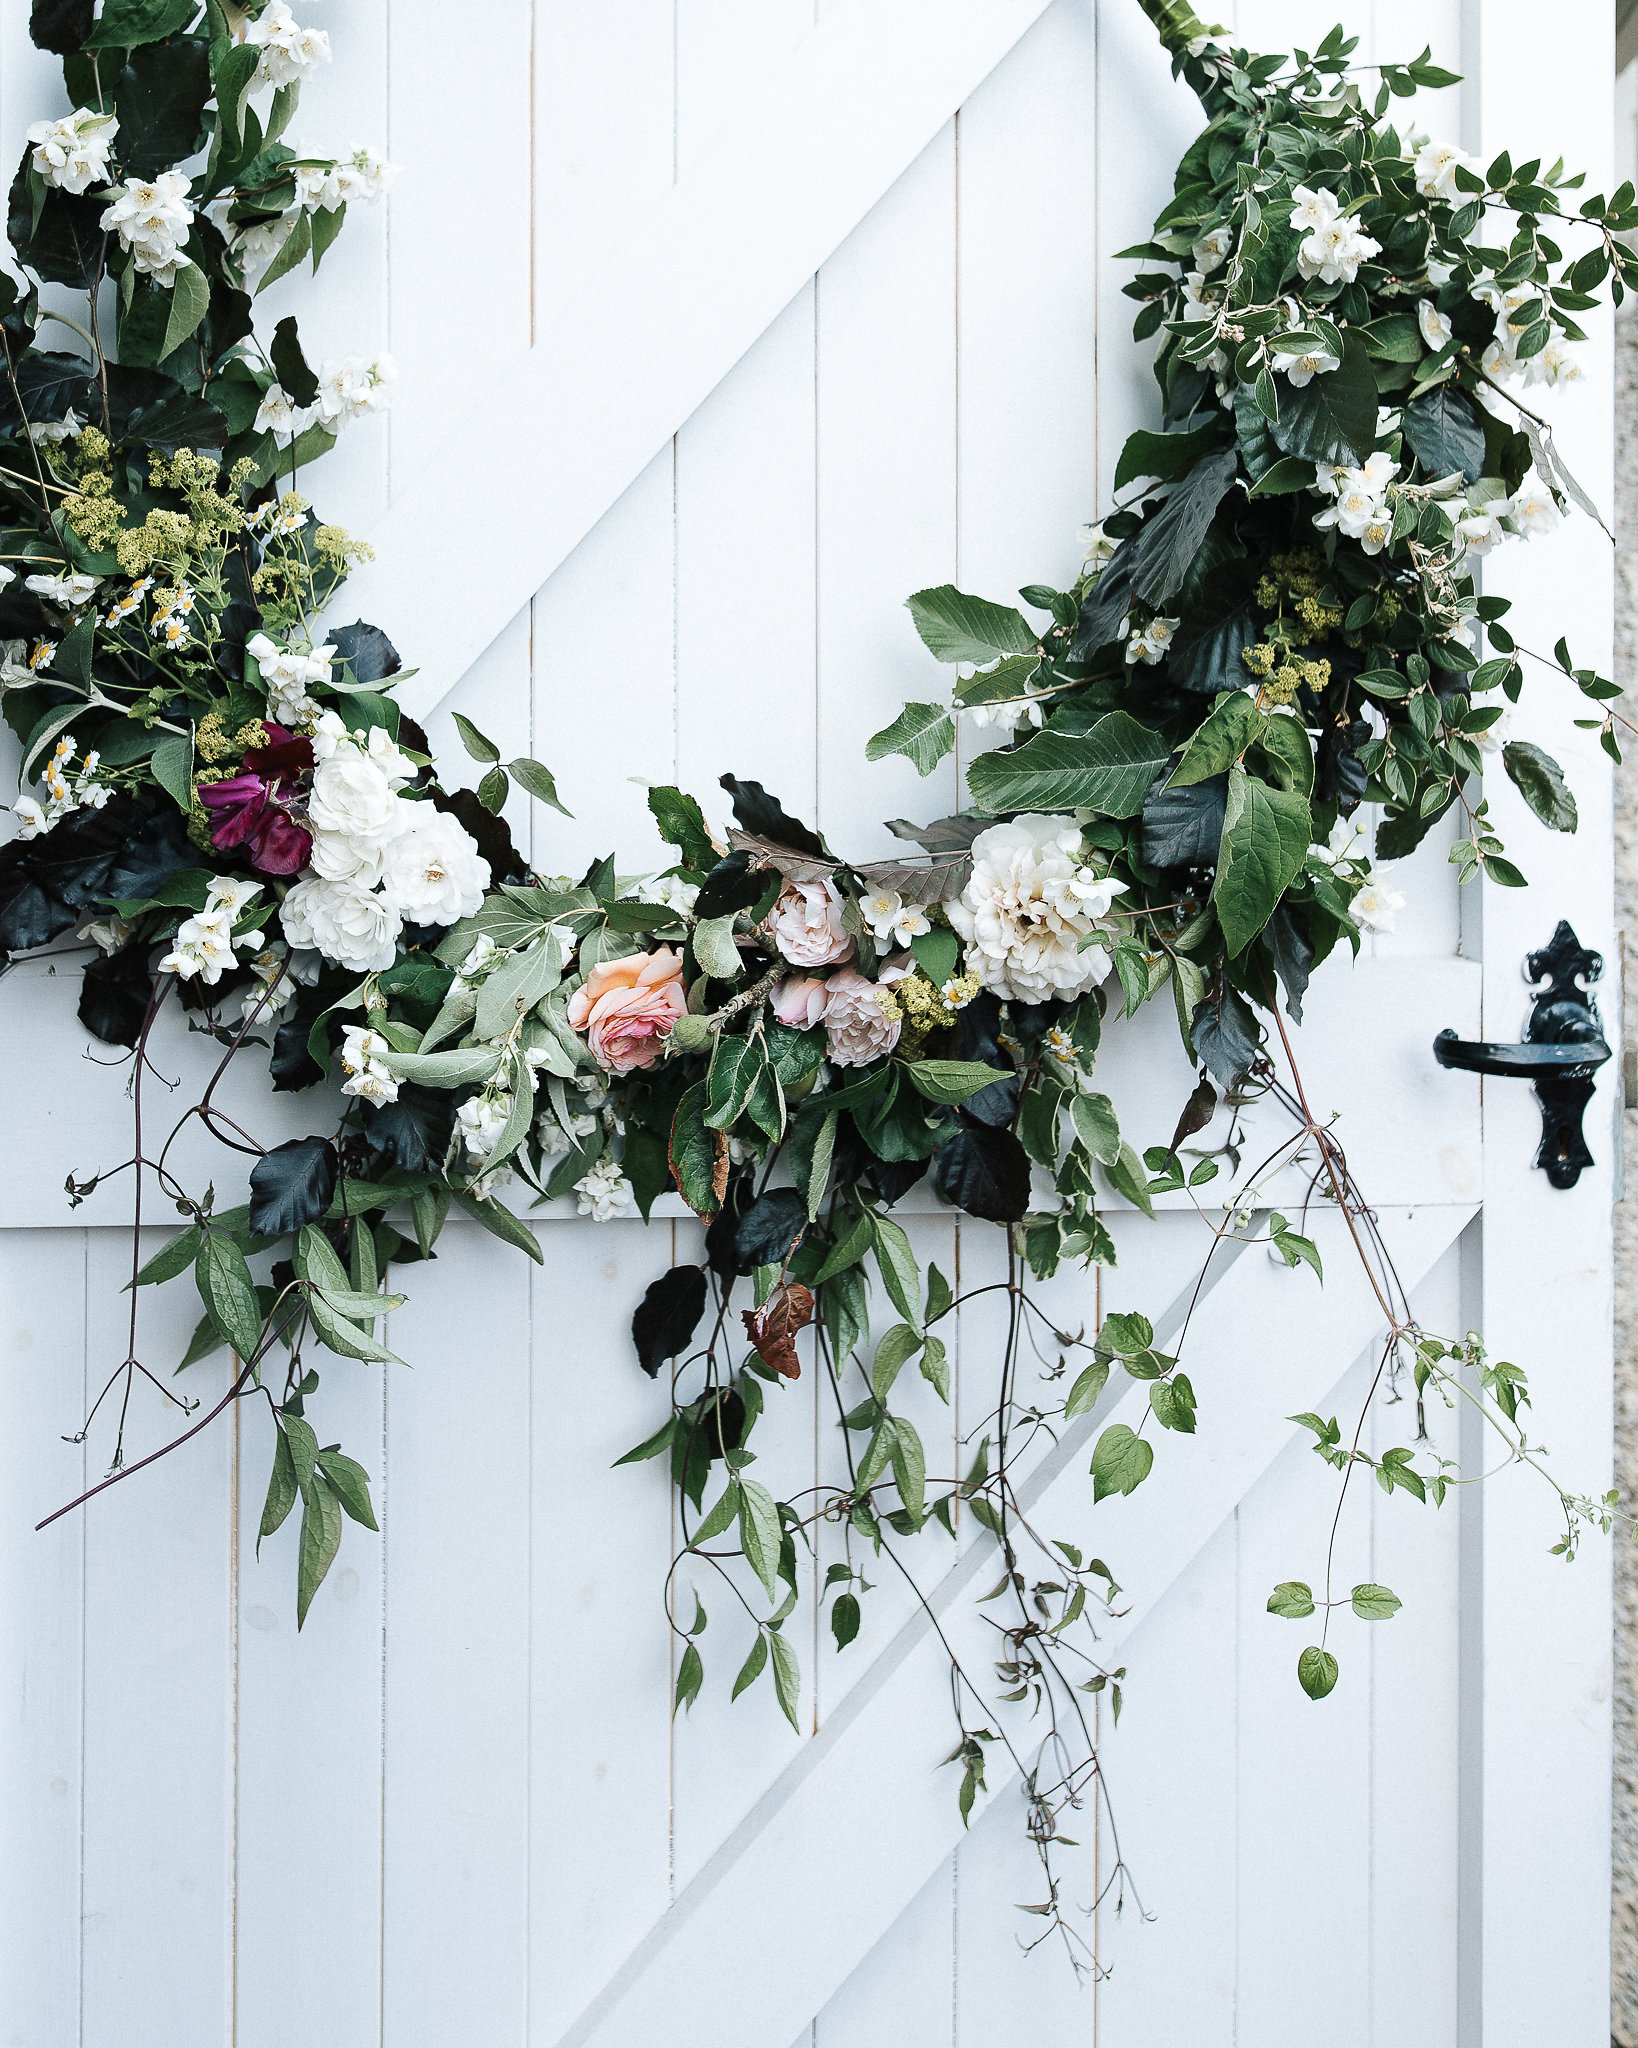 DIY floral hoop decoration